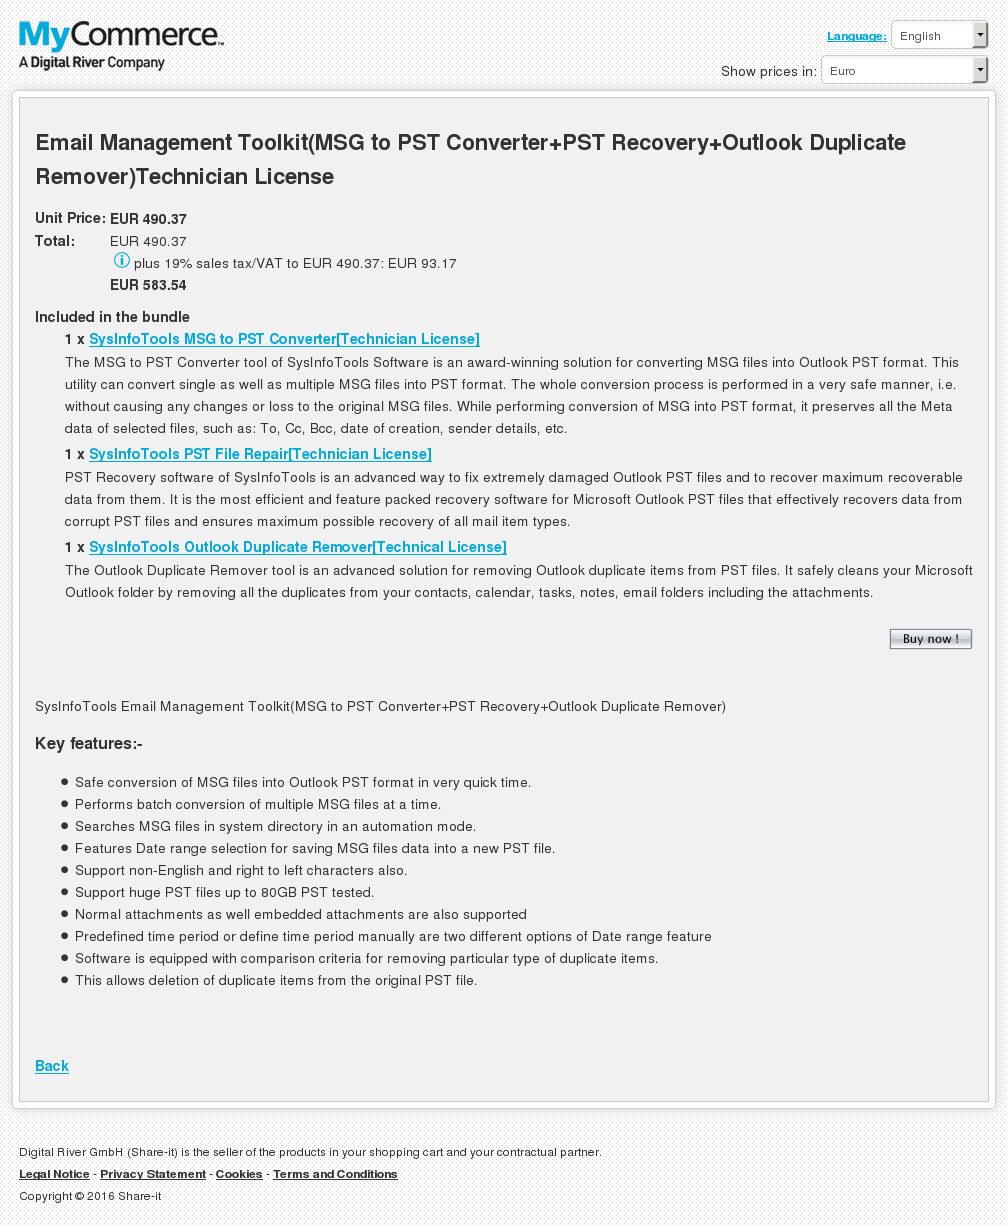 Email Management Toolkit Msg Pst Converter Recovery Outlook Duplicate Remover Technician License Features